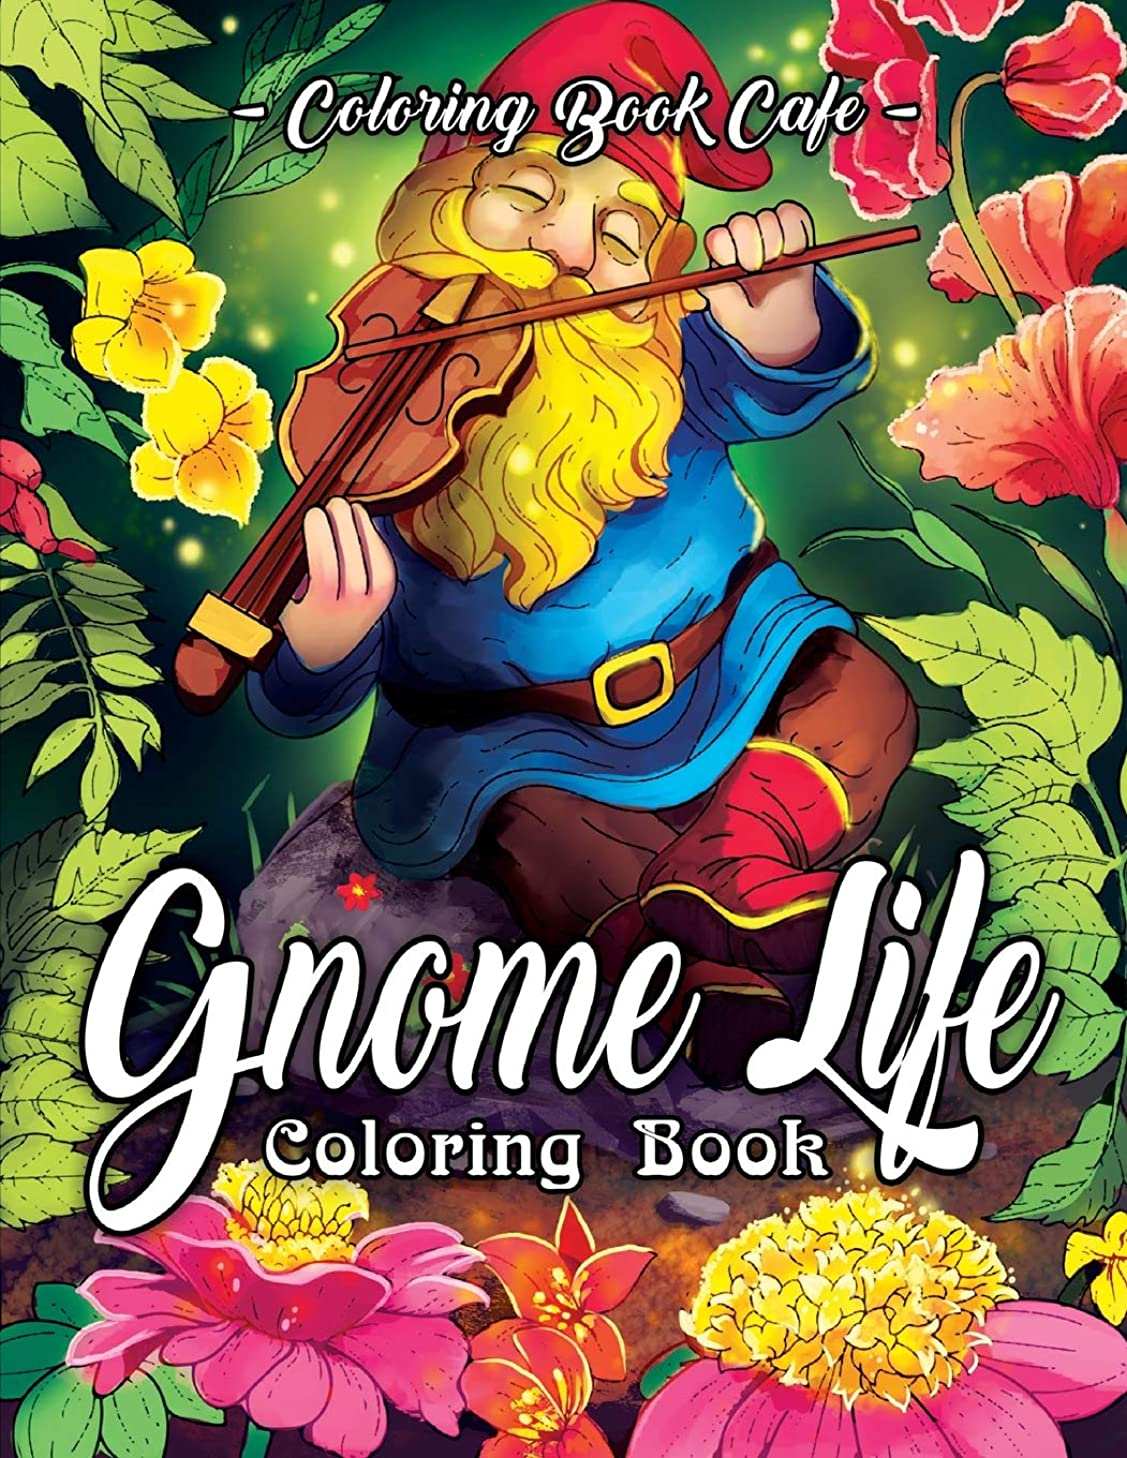 逃げる根拠栄養Gnome Life Coloring Book: An Adult Coloring Book Featuring Fun, Whimsical and Beautiful Gnomes for Stress Relief and Relaxation